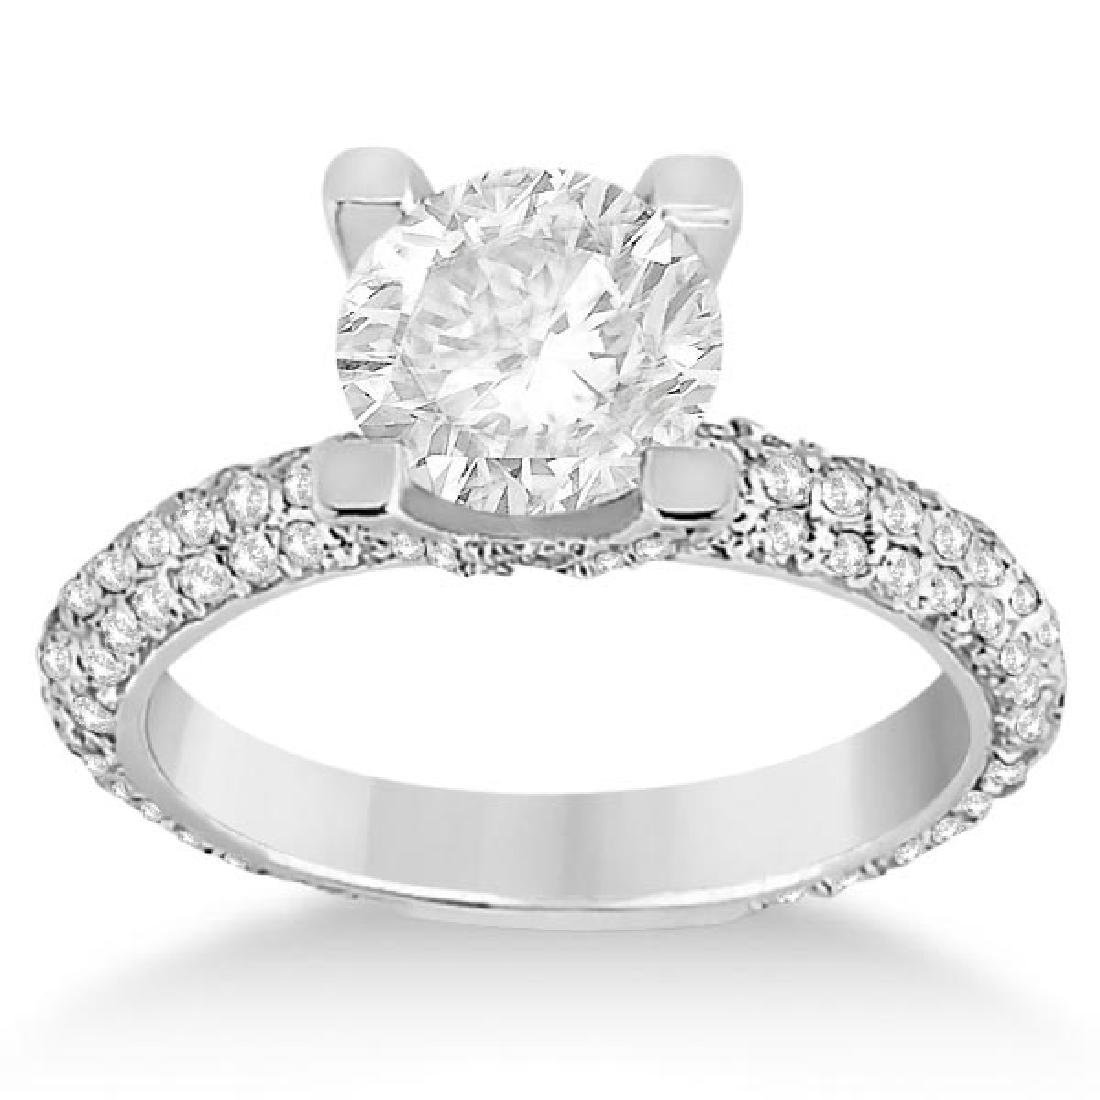 Eternity Pave Set Trio Diamond Engagement Ring 14K Whit